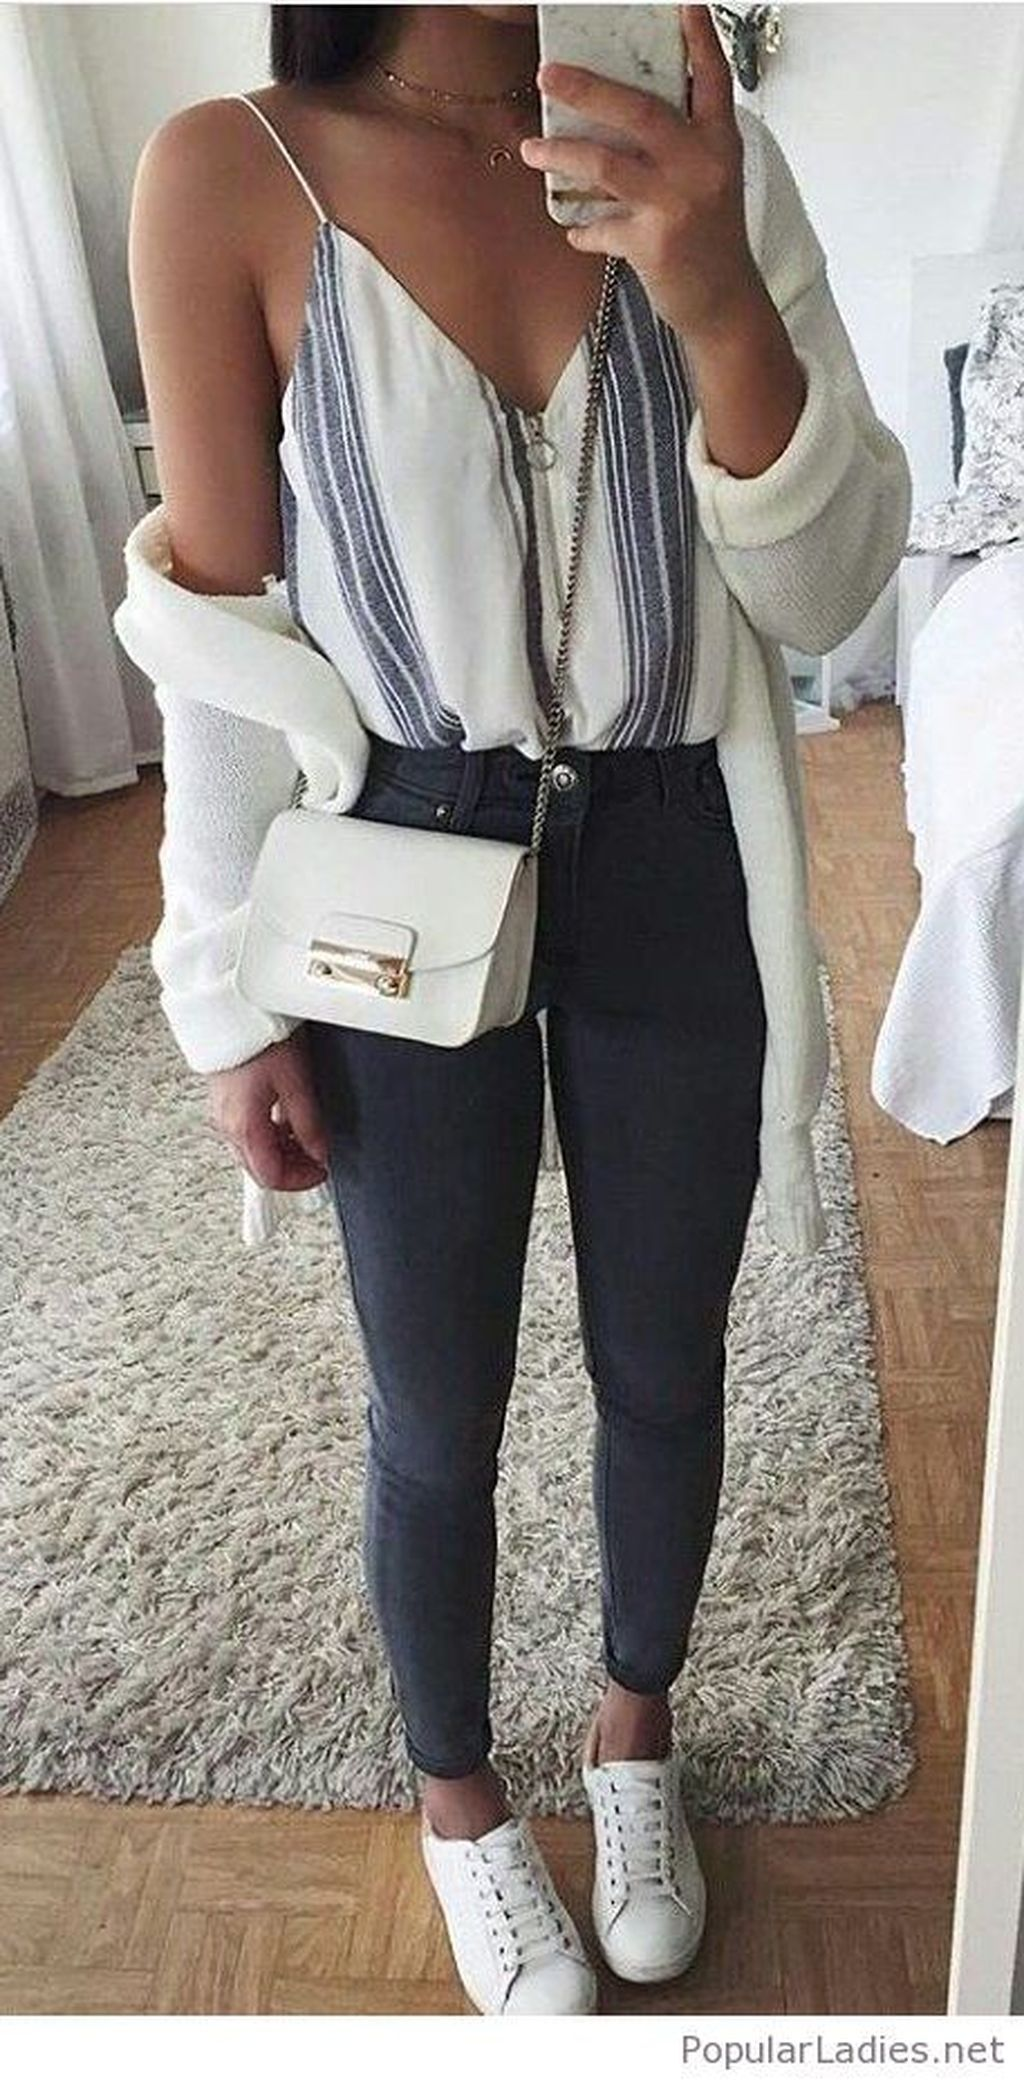 e1c056e65088 Awesome 60 Fantastic Spring And Summer Clothing Inspiration For Women 2018.  More at http